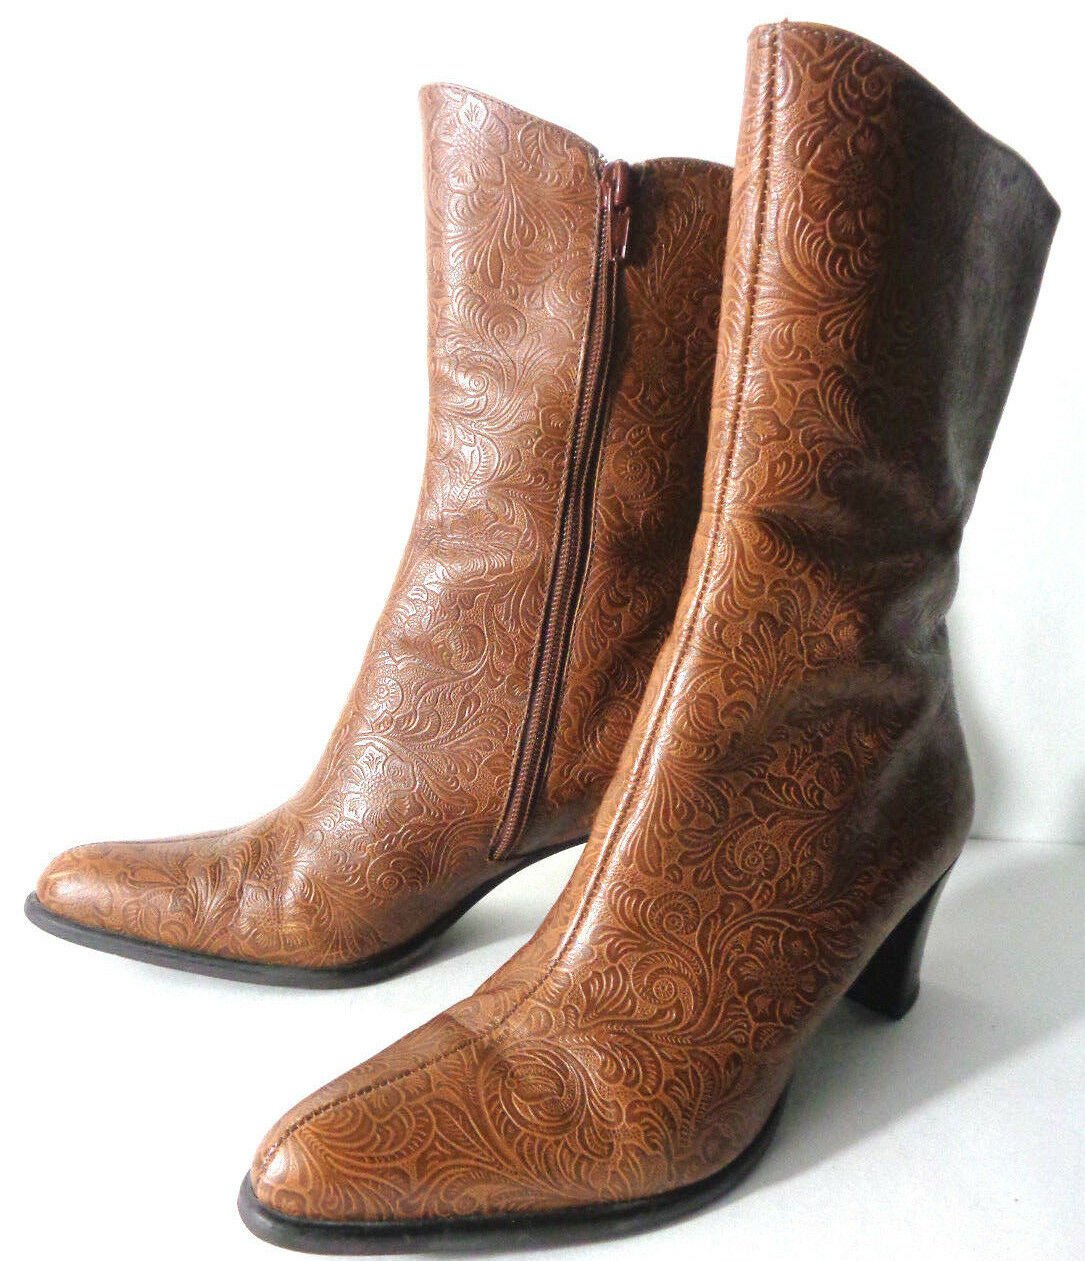 A. MARTINELLI Archer US 6.5M Brown 'tooled' Leather Zip Ankle Boots Medium Heel